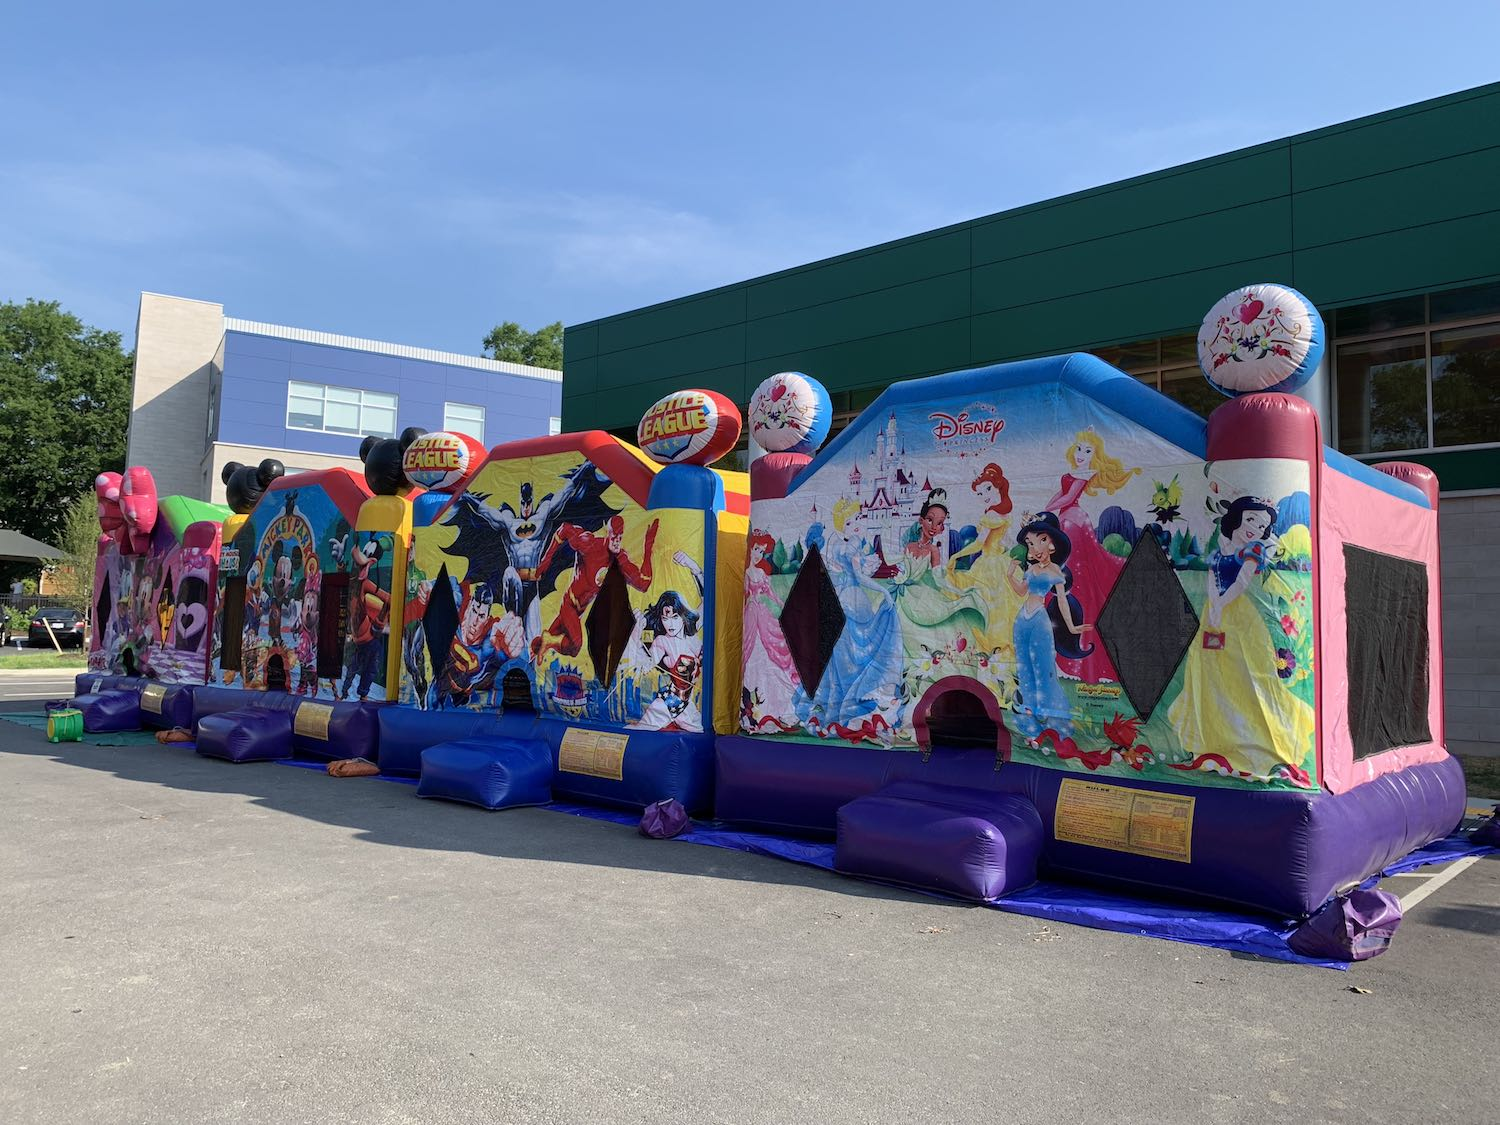 Minnie Mouse, Mickey Mouse, Justice League, Disney Princess bounce house